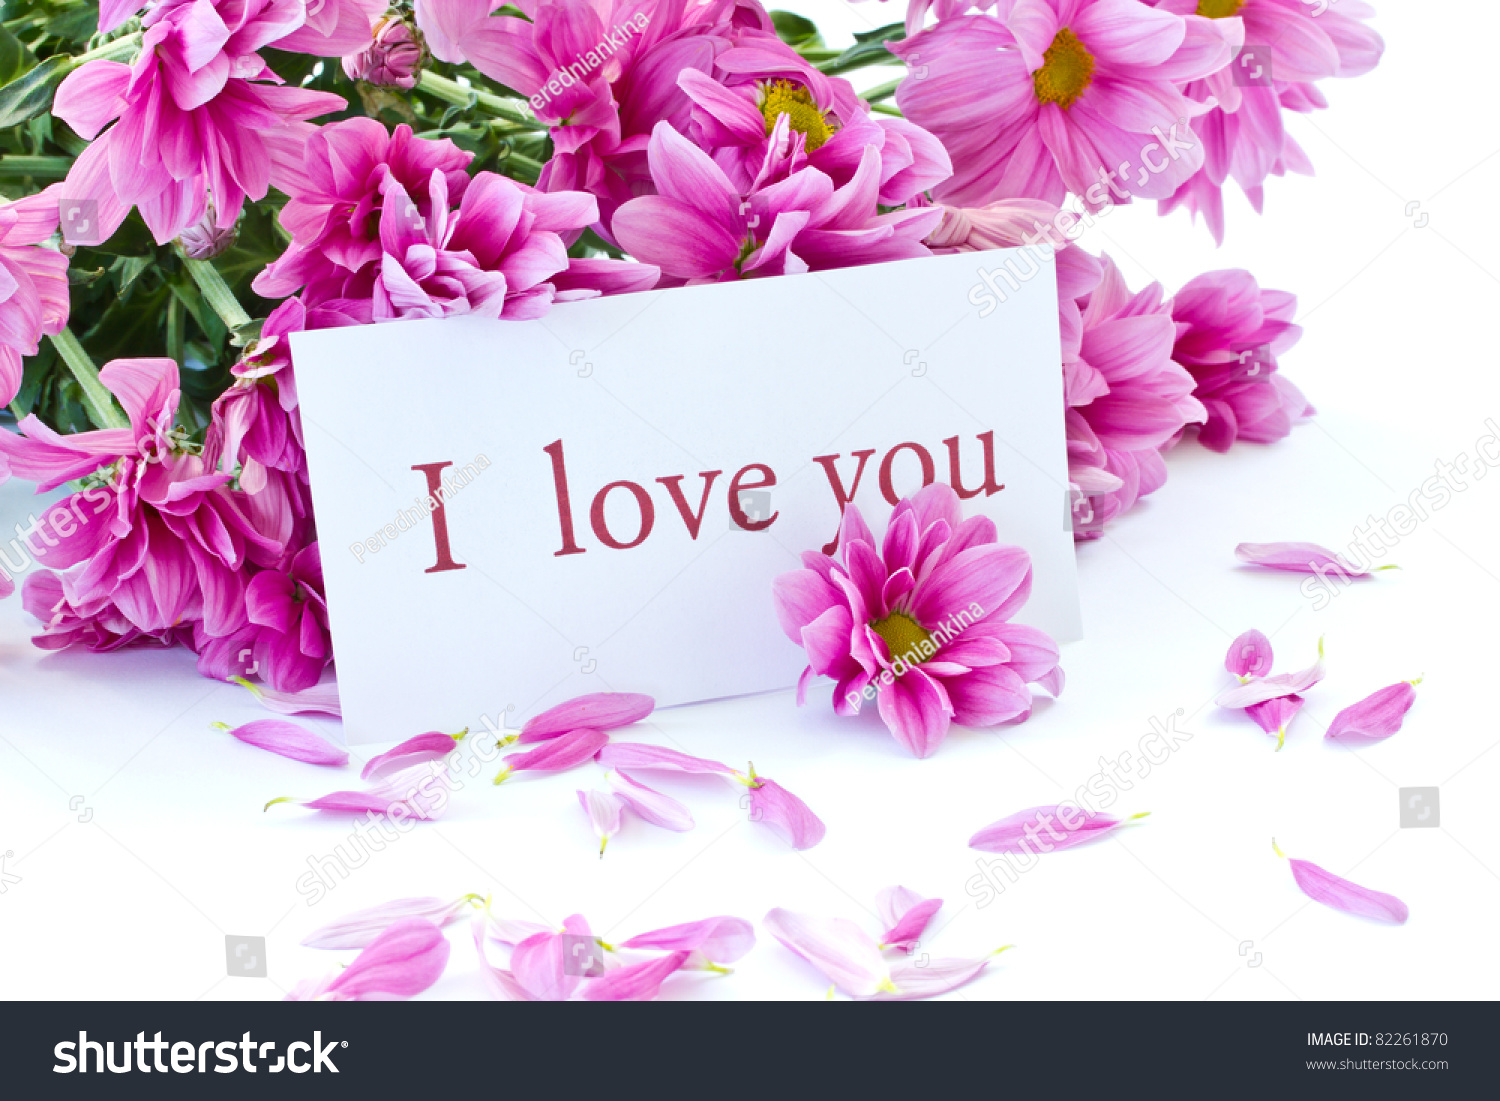 Says I Love You On Background Stock Photo Edit Now 82261870